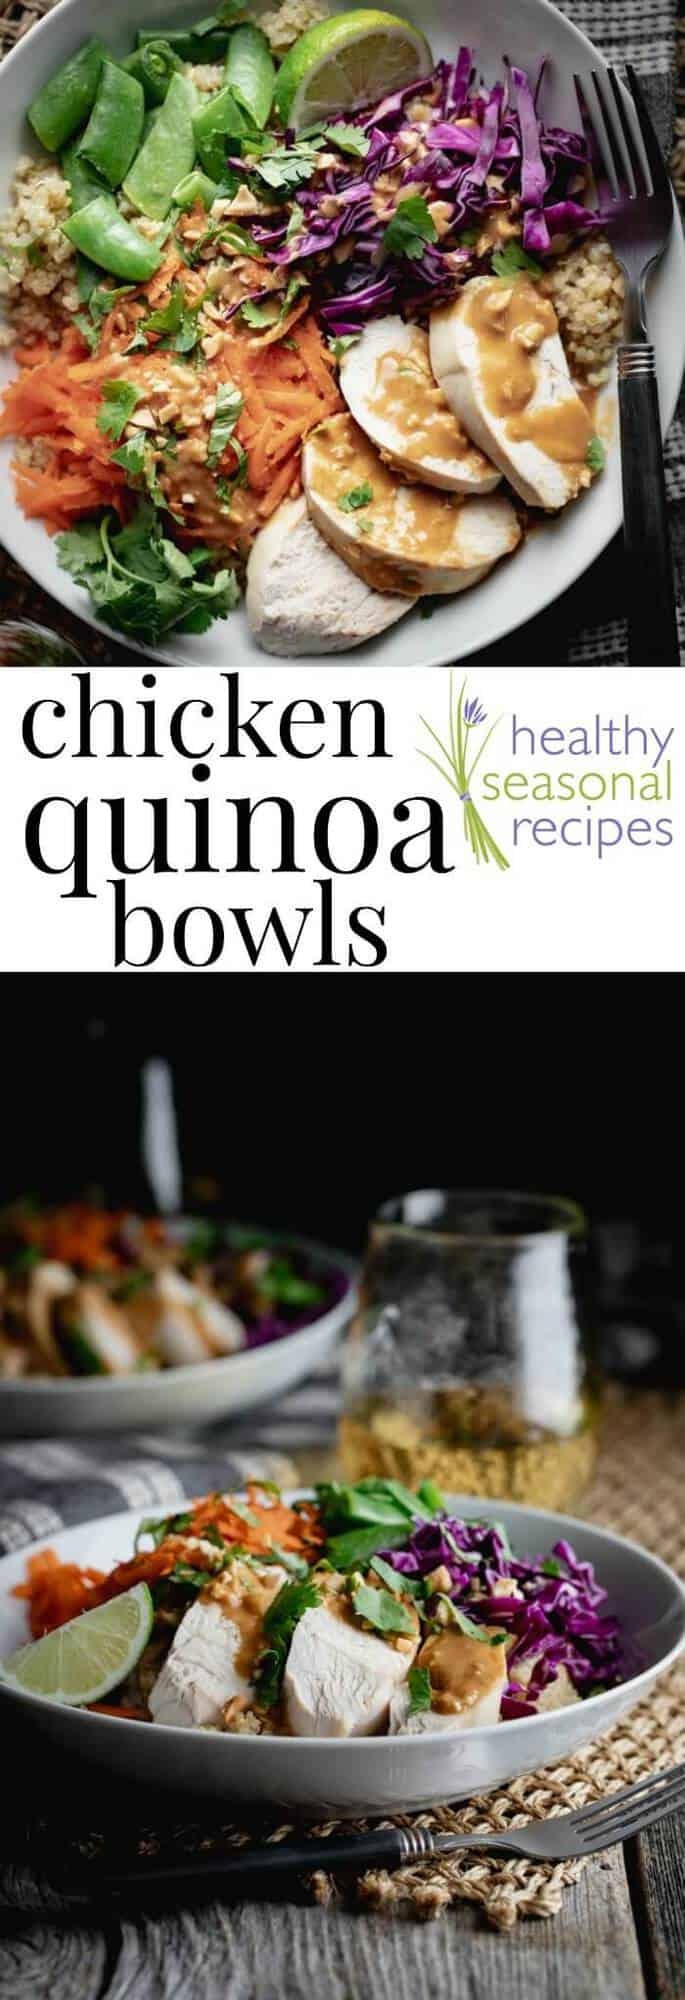 These healthy chicken quinoa bowls are easily customizable to use what ingredients you have on hand. Here we topped the quinoa power bowls with with chicken, cabbage, snow peas and carrots. Drizzle with simple home-made peanut dressing. These bowls are great for beginners and you can feel free to sub in cooked left-over chicken, rotisserie chicken. To make this buddha bowl recipe vegan, sub in cubed baked tofu for the poached chicken, and sub vegetable broth for the vegetable broth. #quinoa #chicken #bowl #peanut #glutenfree #healthy #entree #buddhabowl